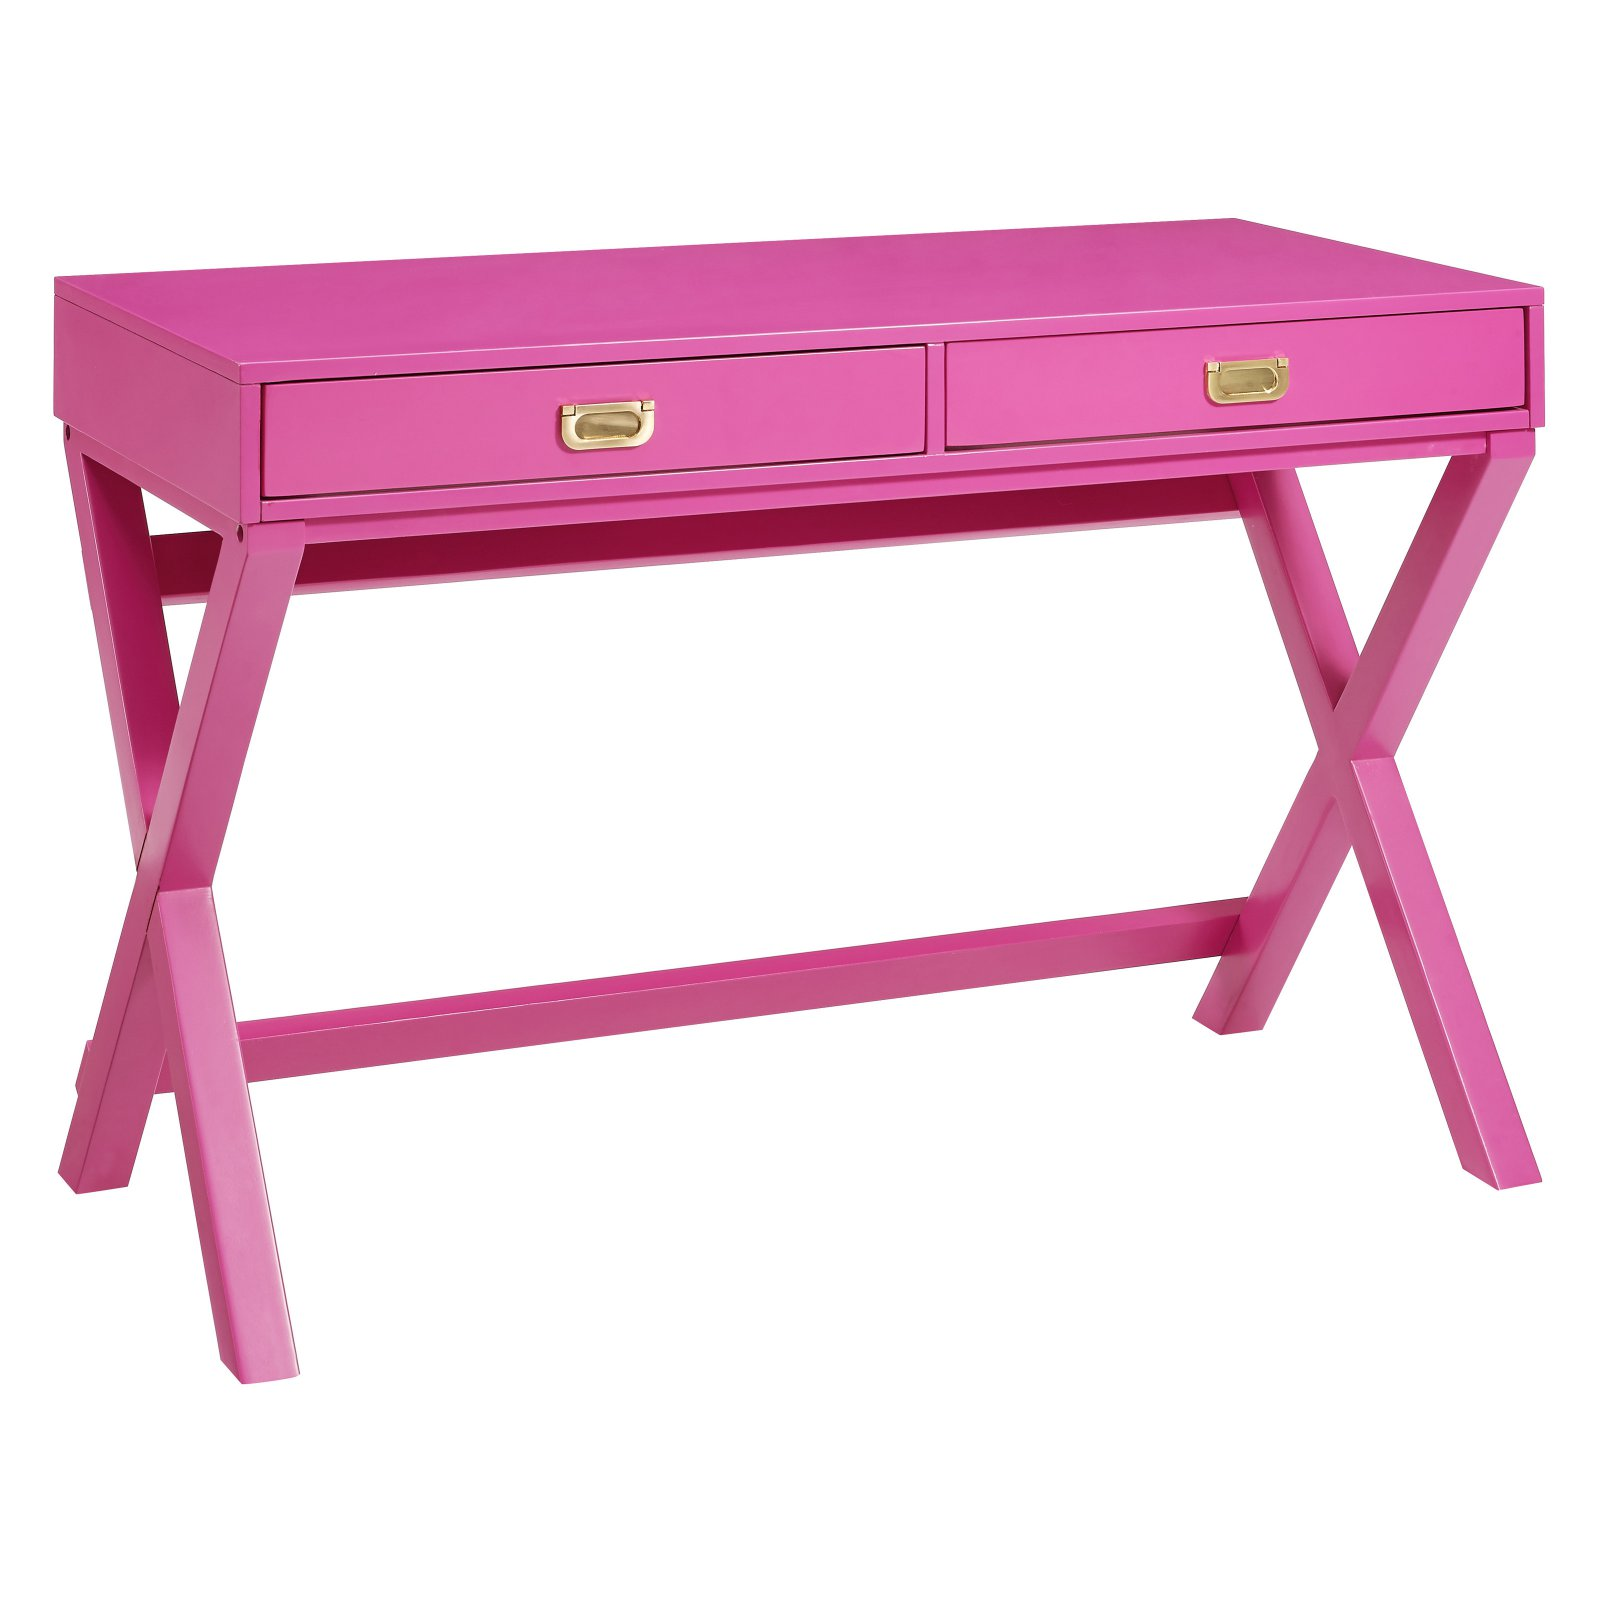 Linon Paige Writing Desk, Raspberry, 2 Drawers, 30 inches Tall